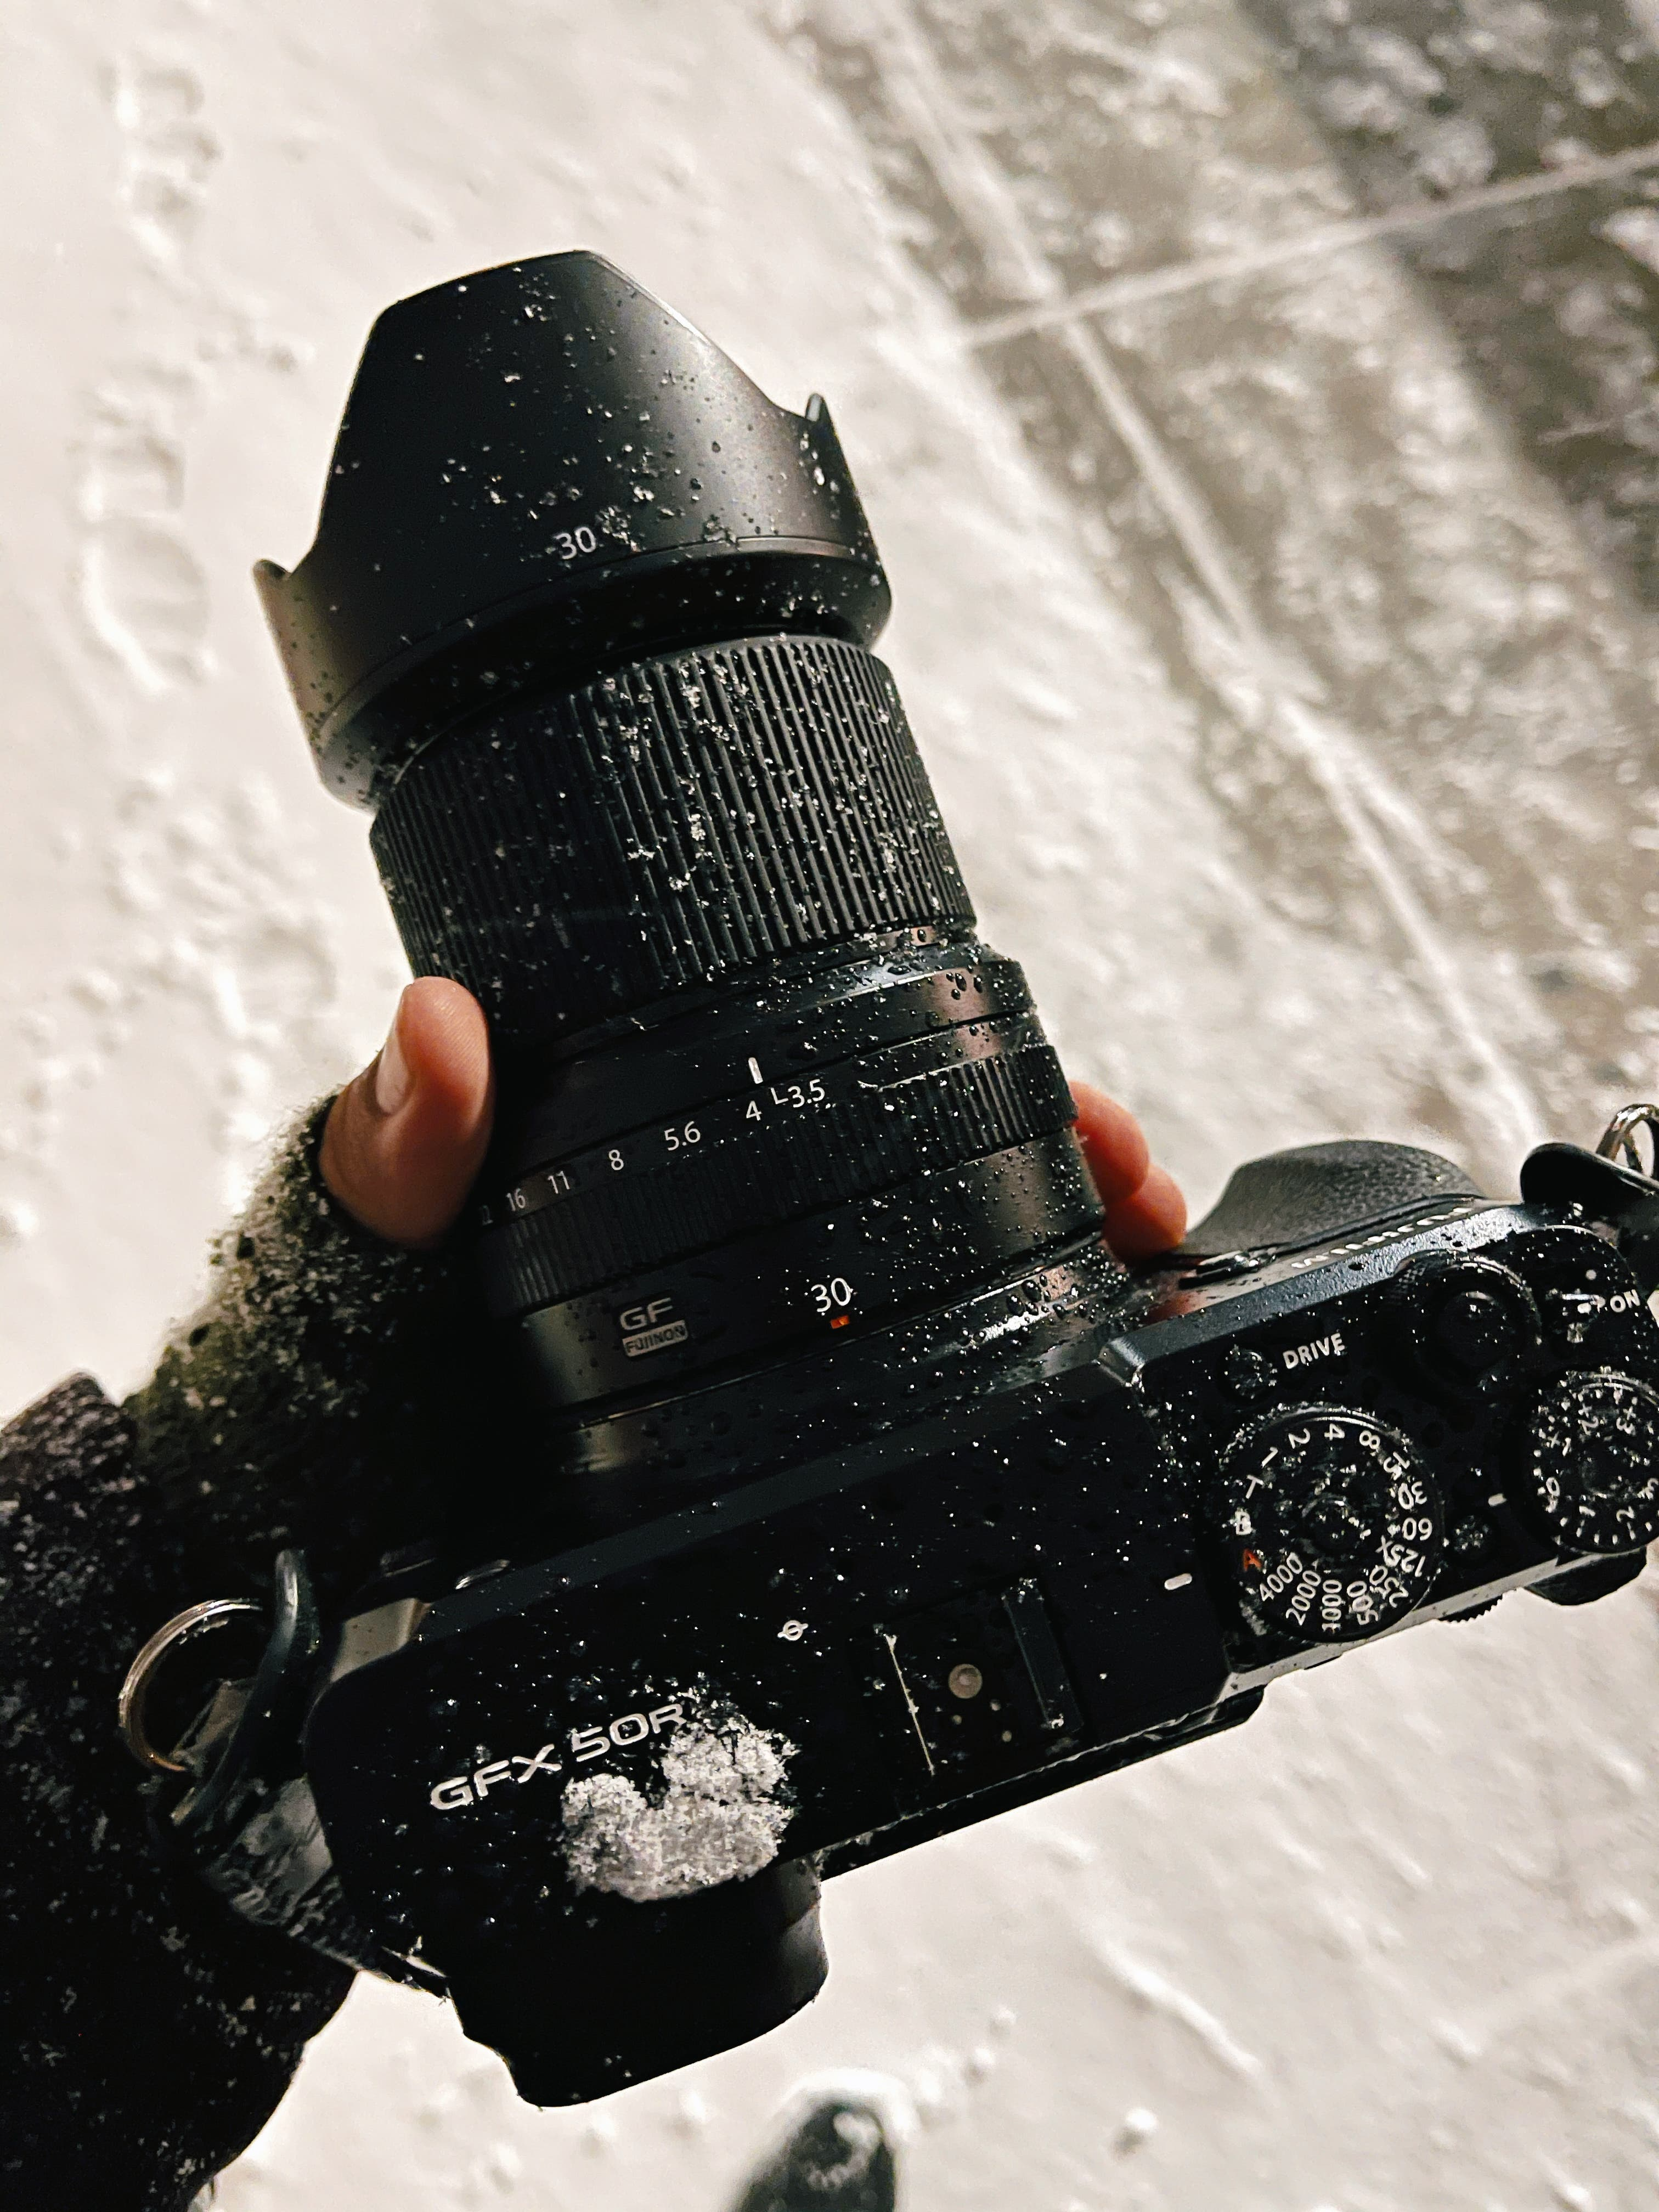 You Can Grab These Fuji GFX Cameras and More Right Now!